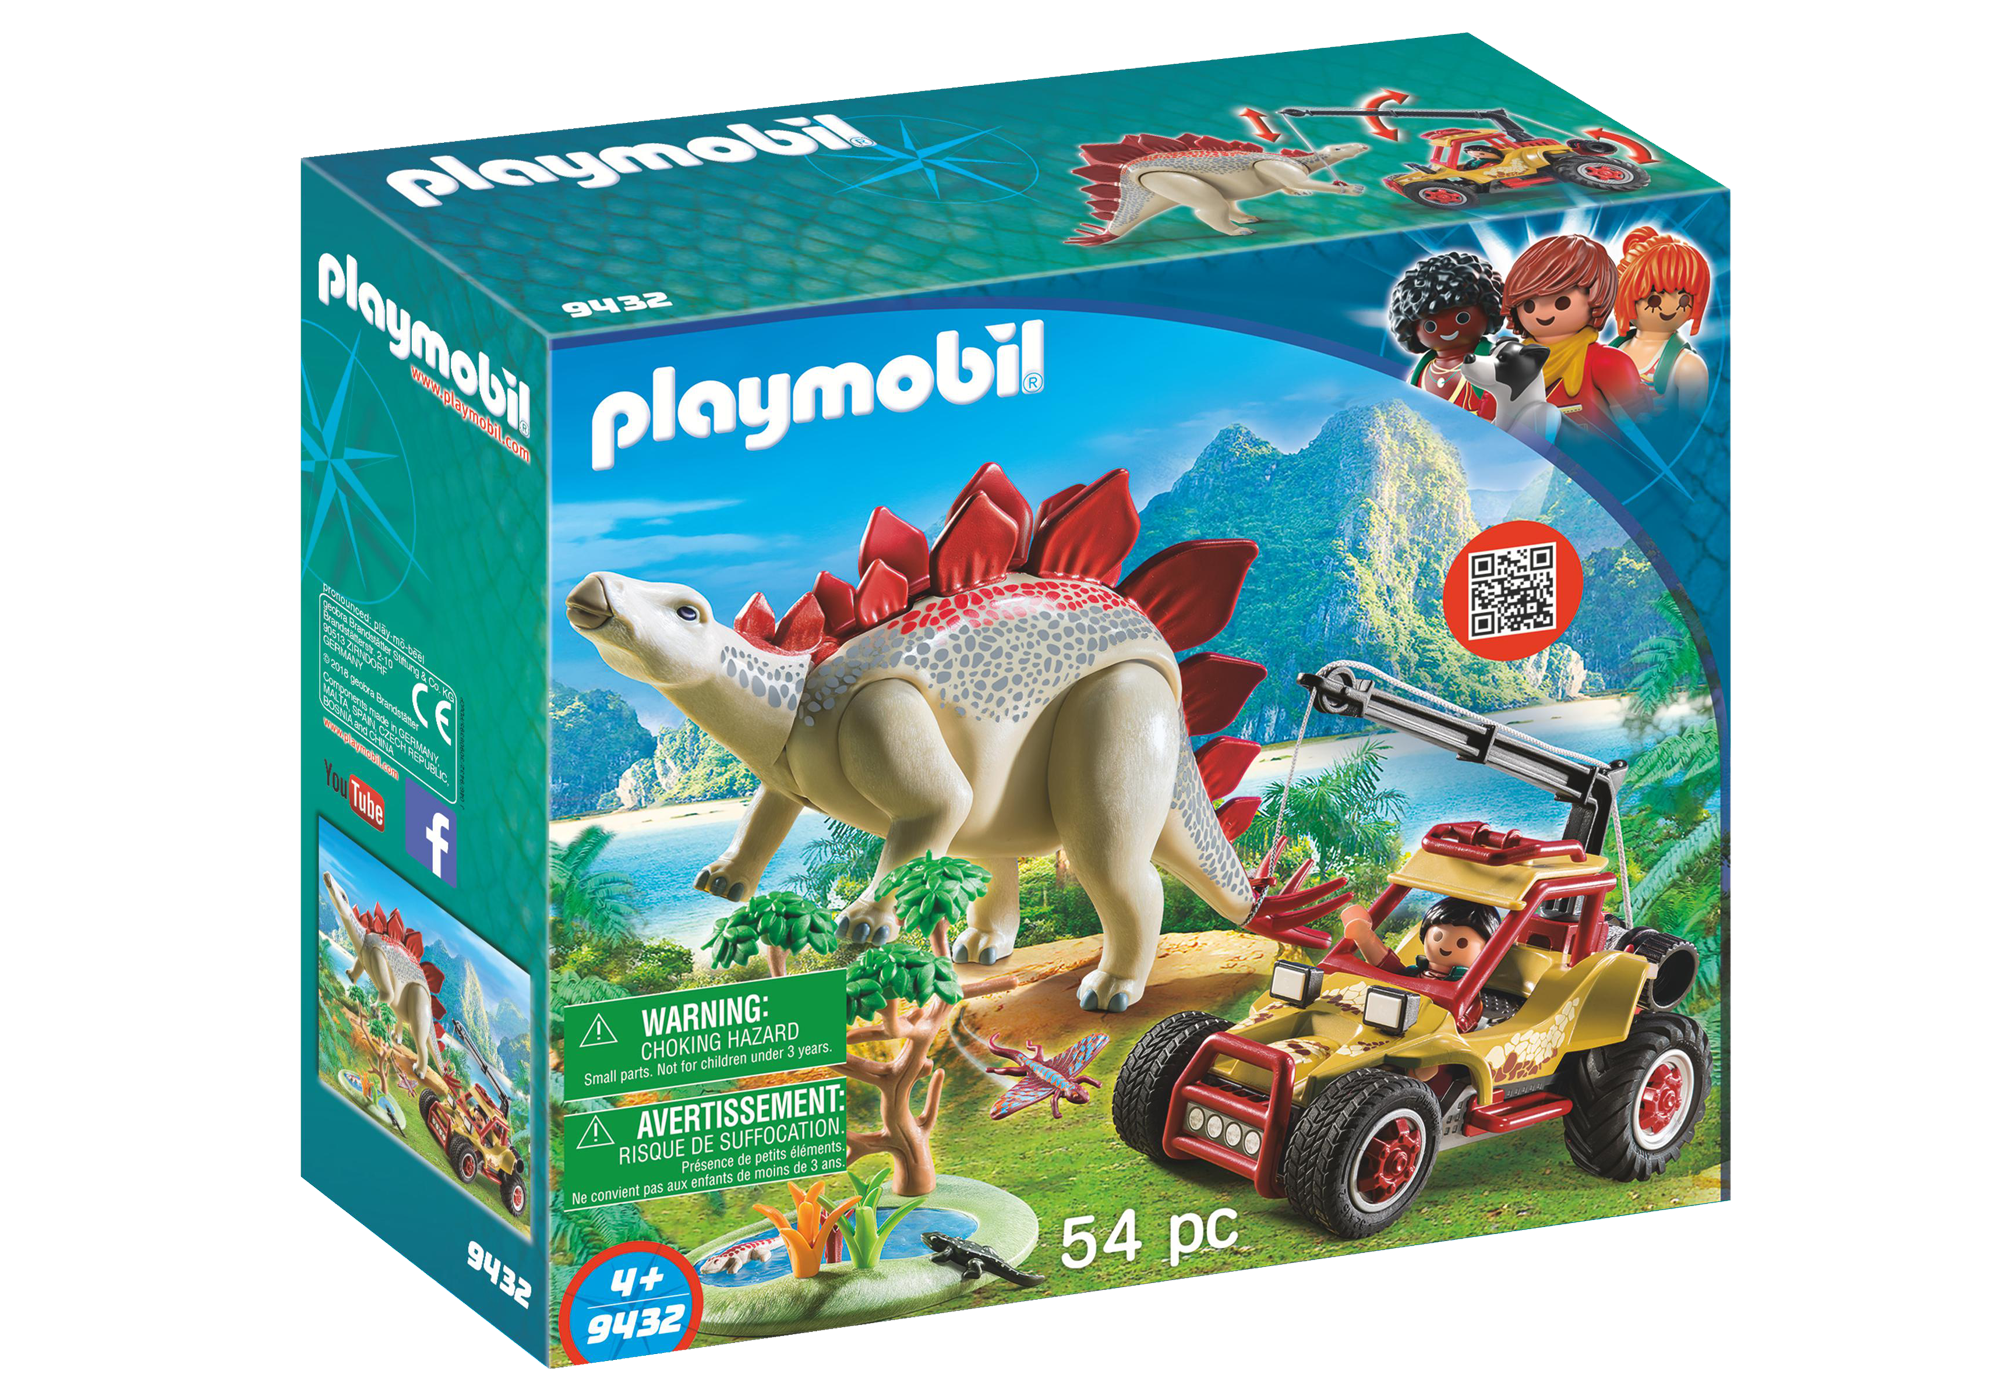 http://media.playmobil.com/i/playmobil/9432_product_box_front